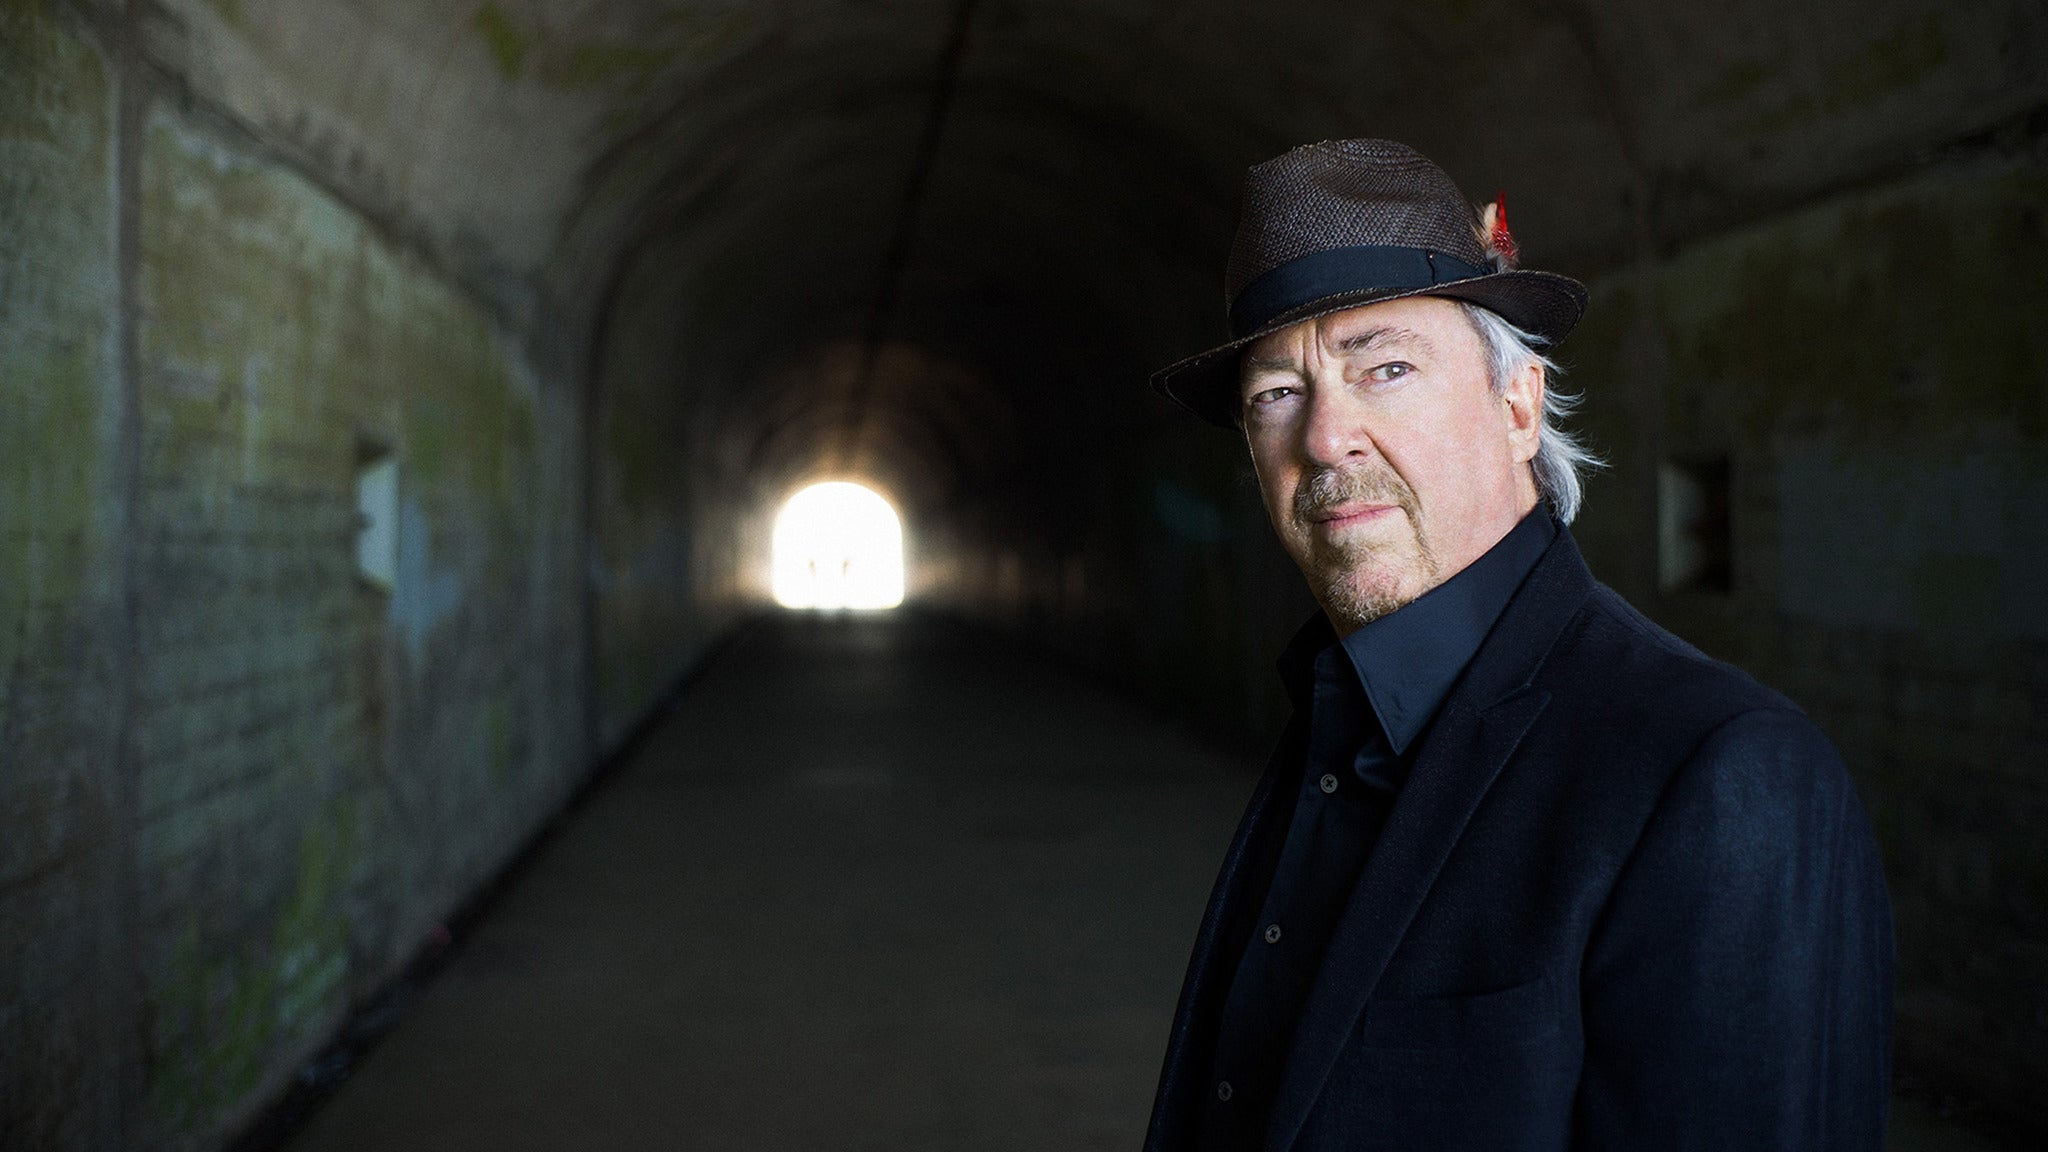 Boz Scaggs at Cheyenne Civic Center